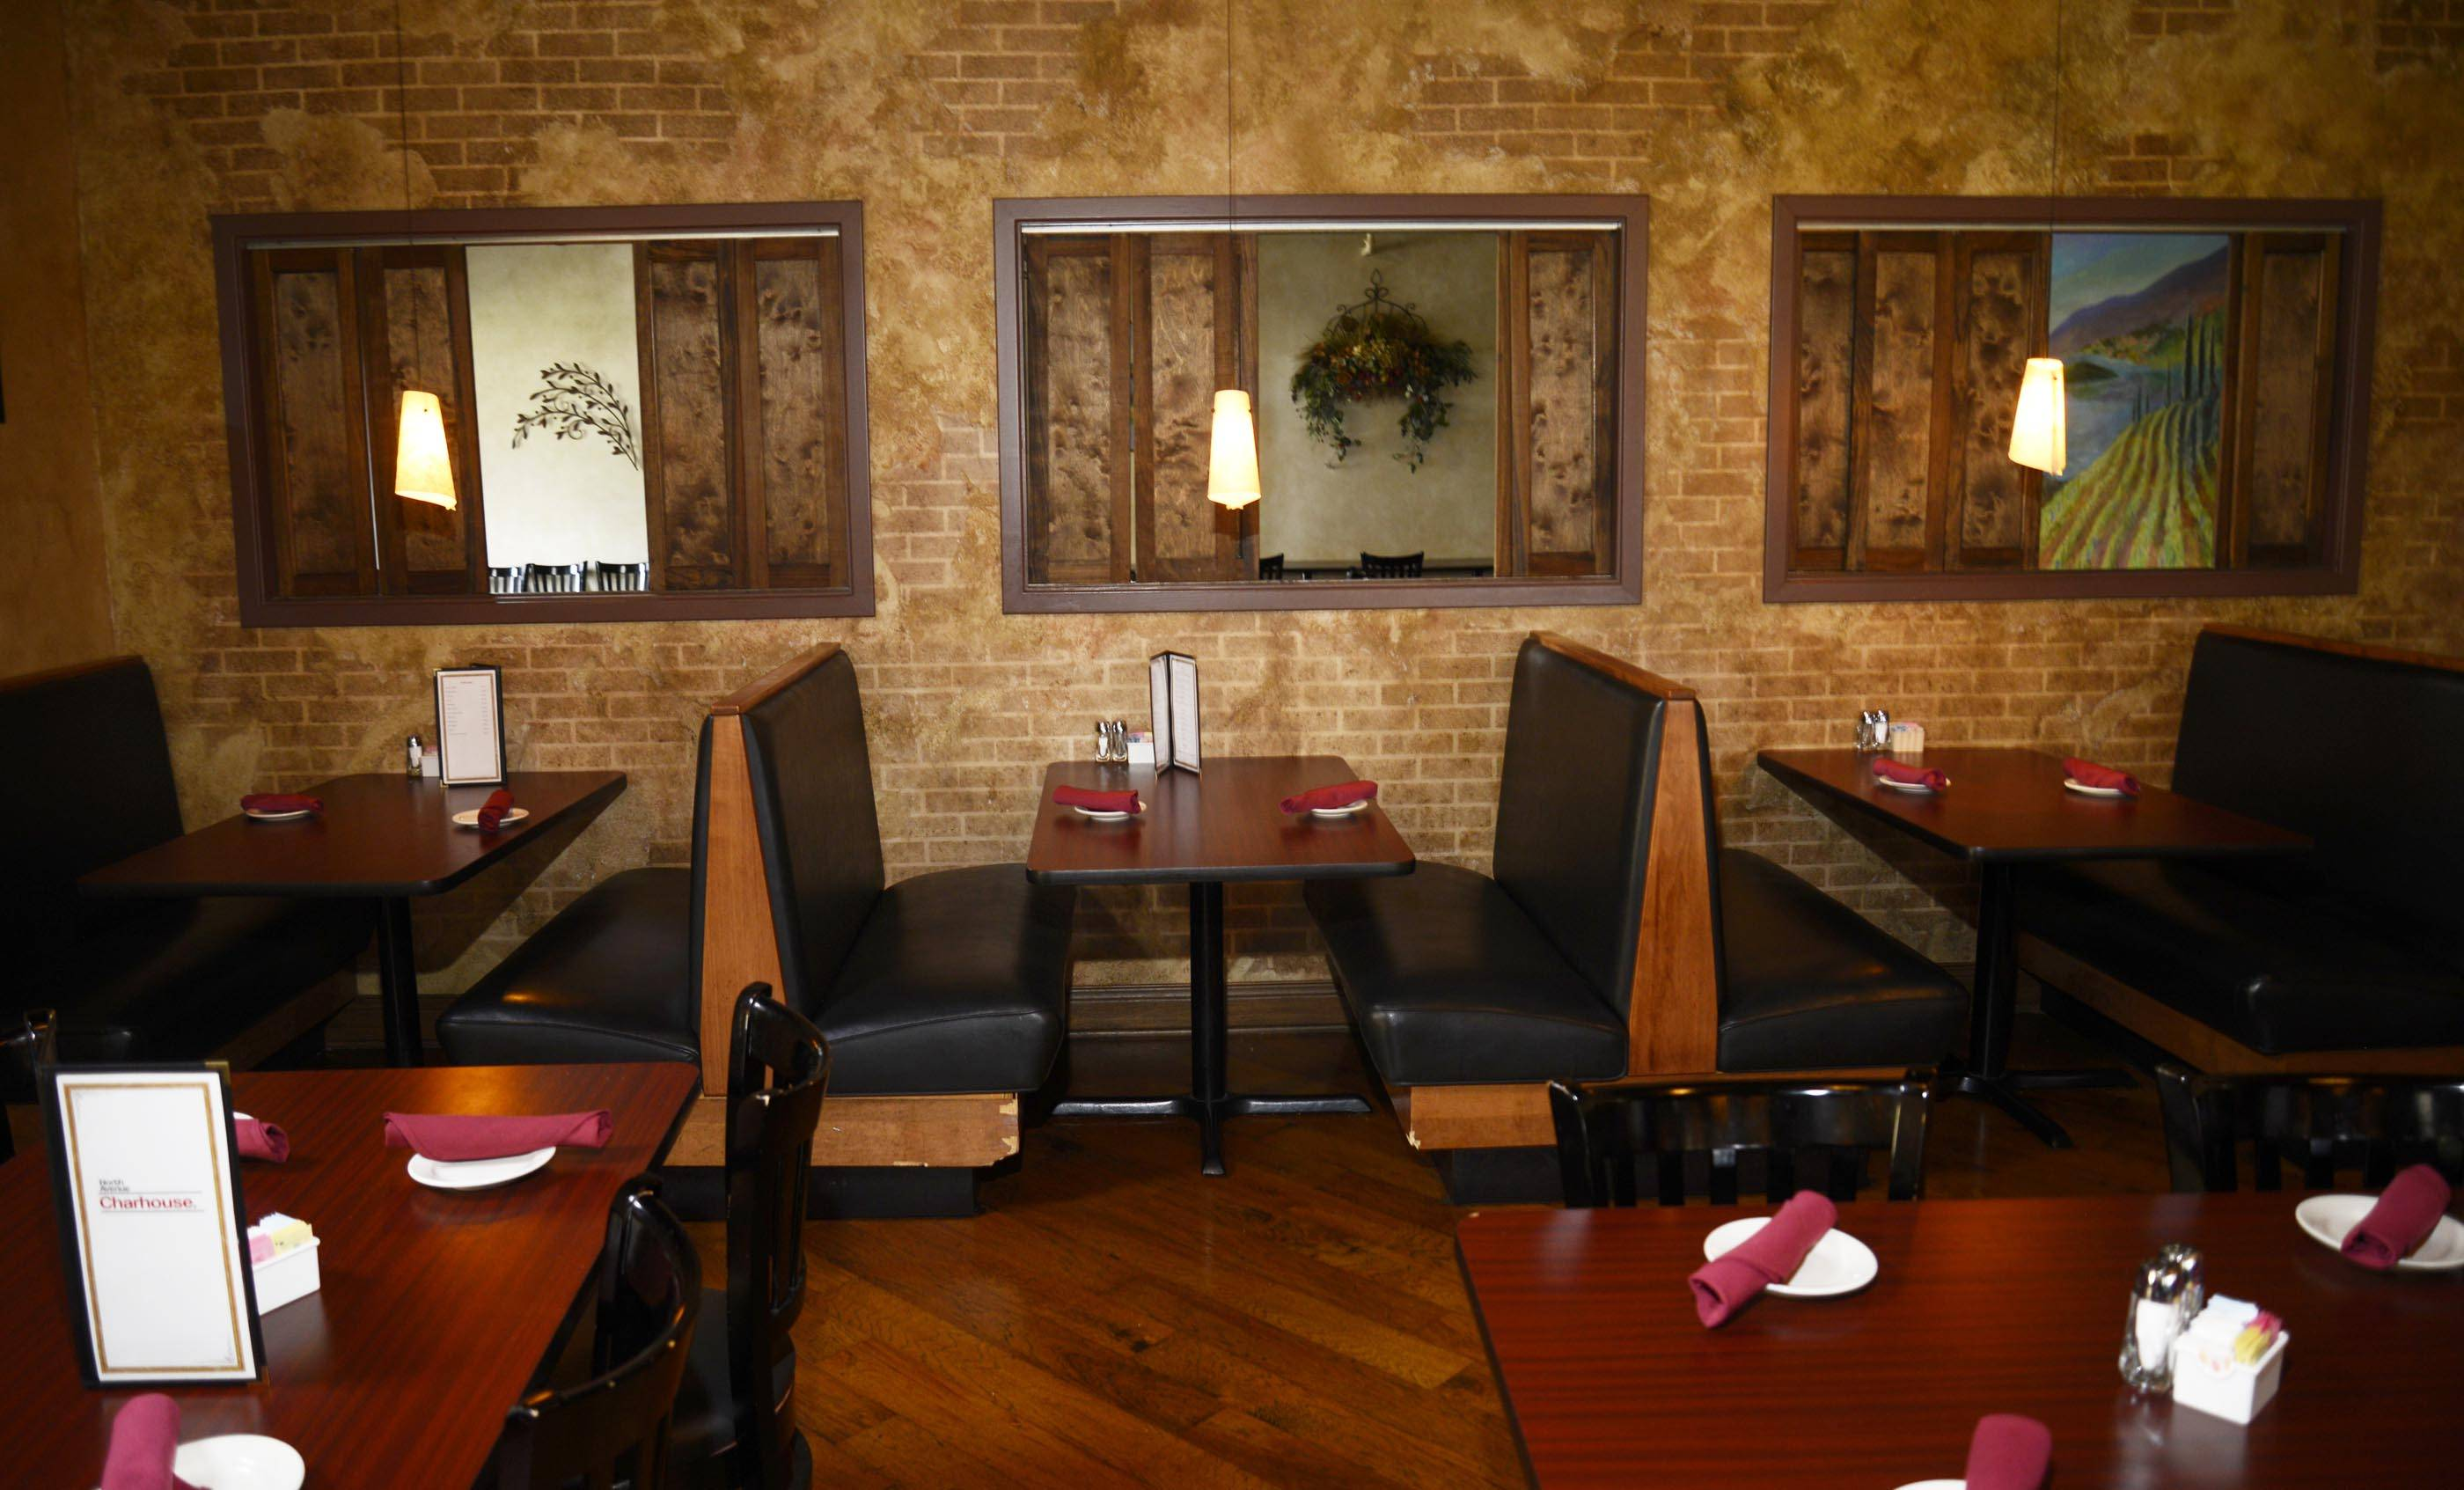 Booths provide comfortable dining option at North Avenue Charhouse in St. Charles.